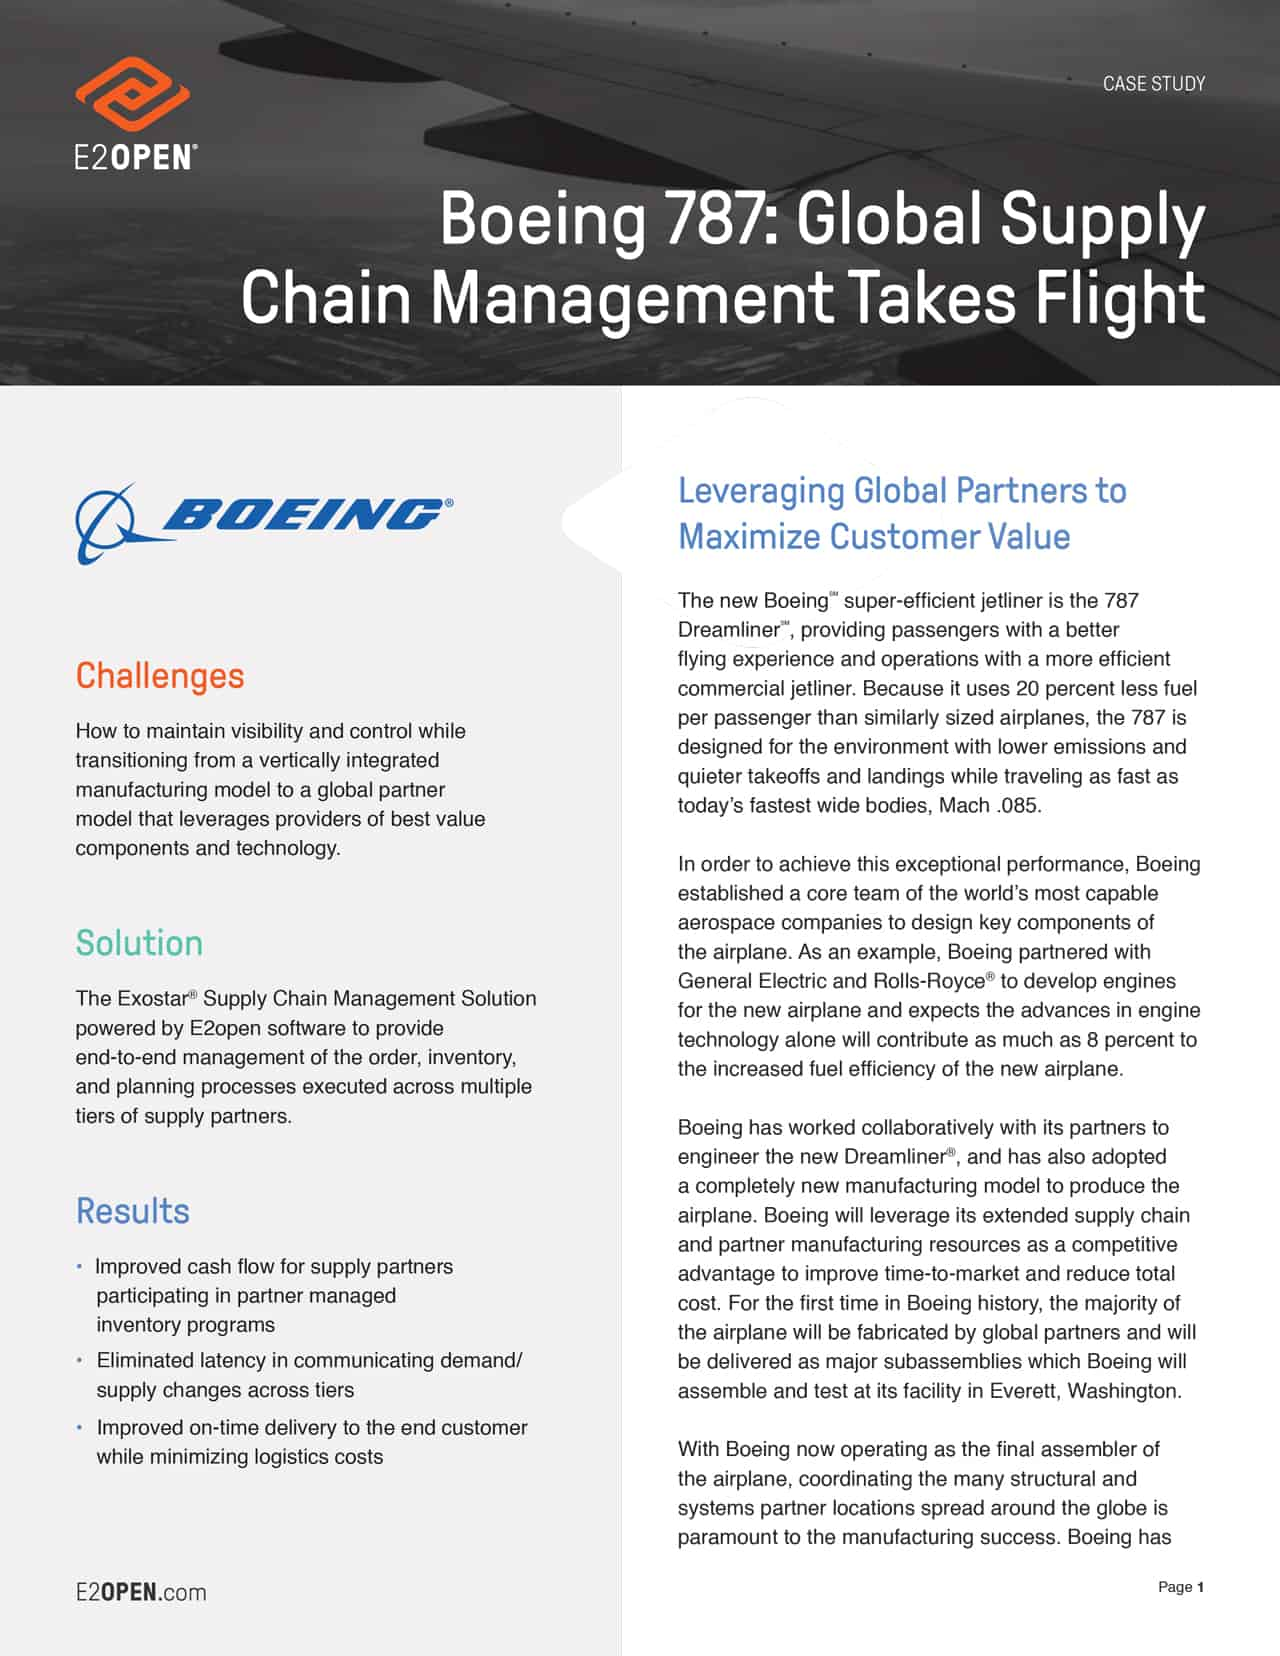 Case Study - Boeing 787: Global Supply Chain Management Takes Flight